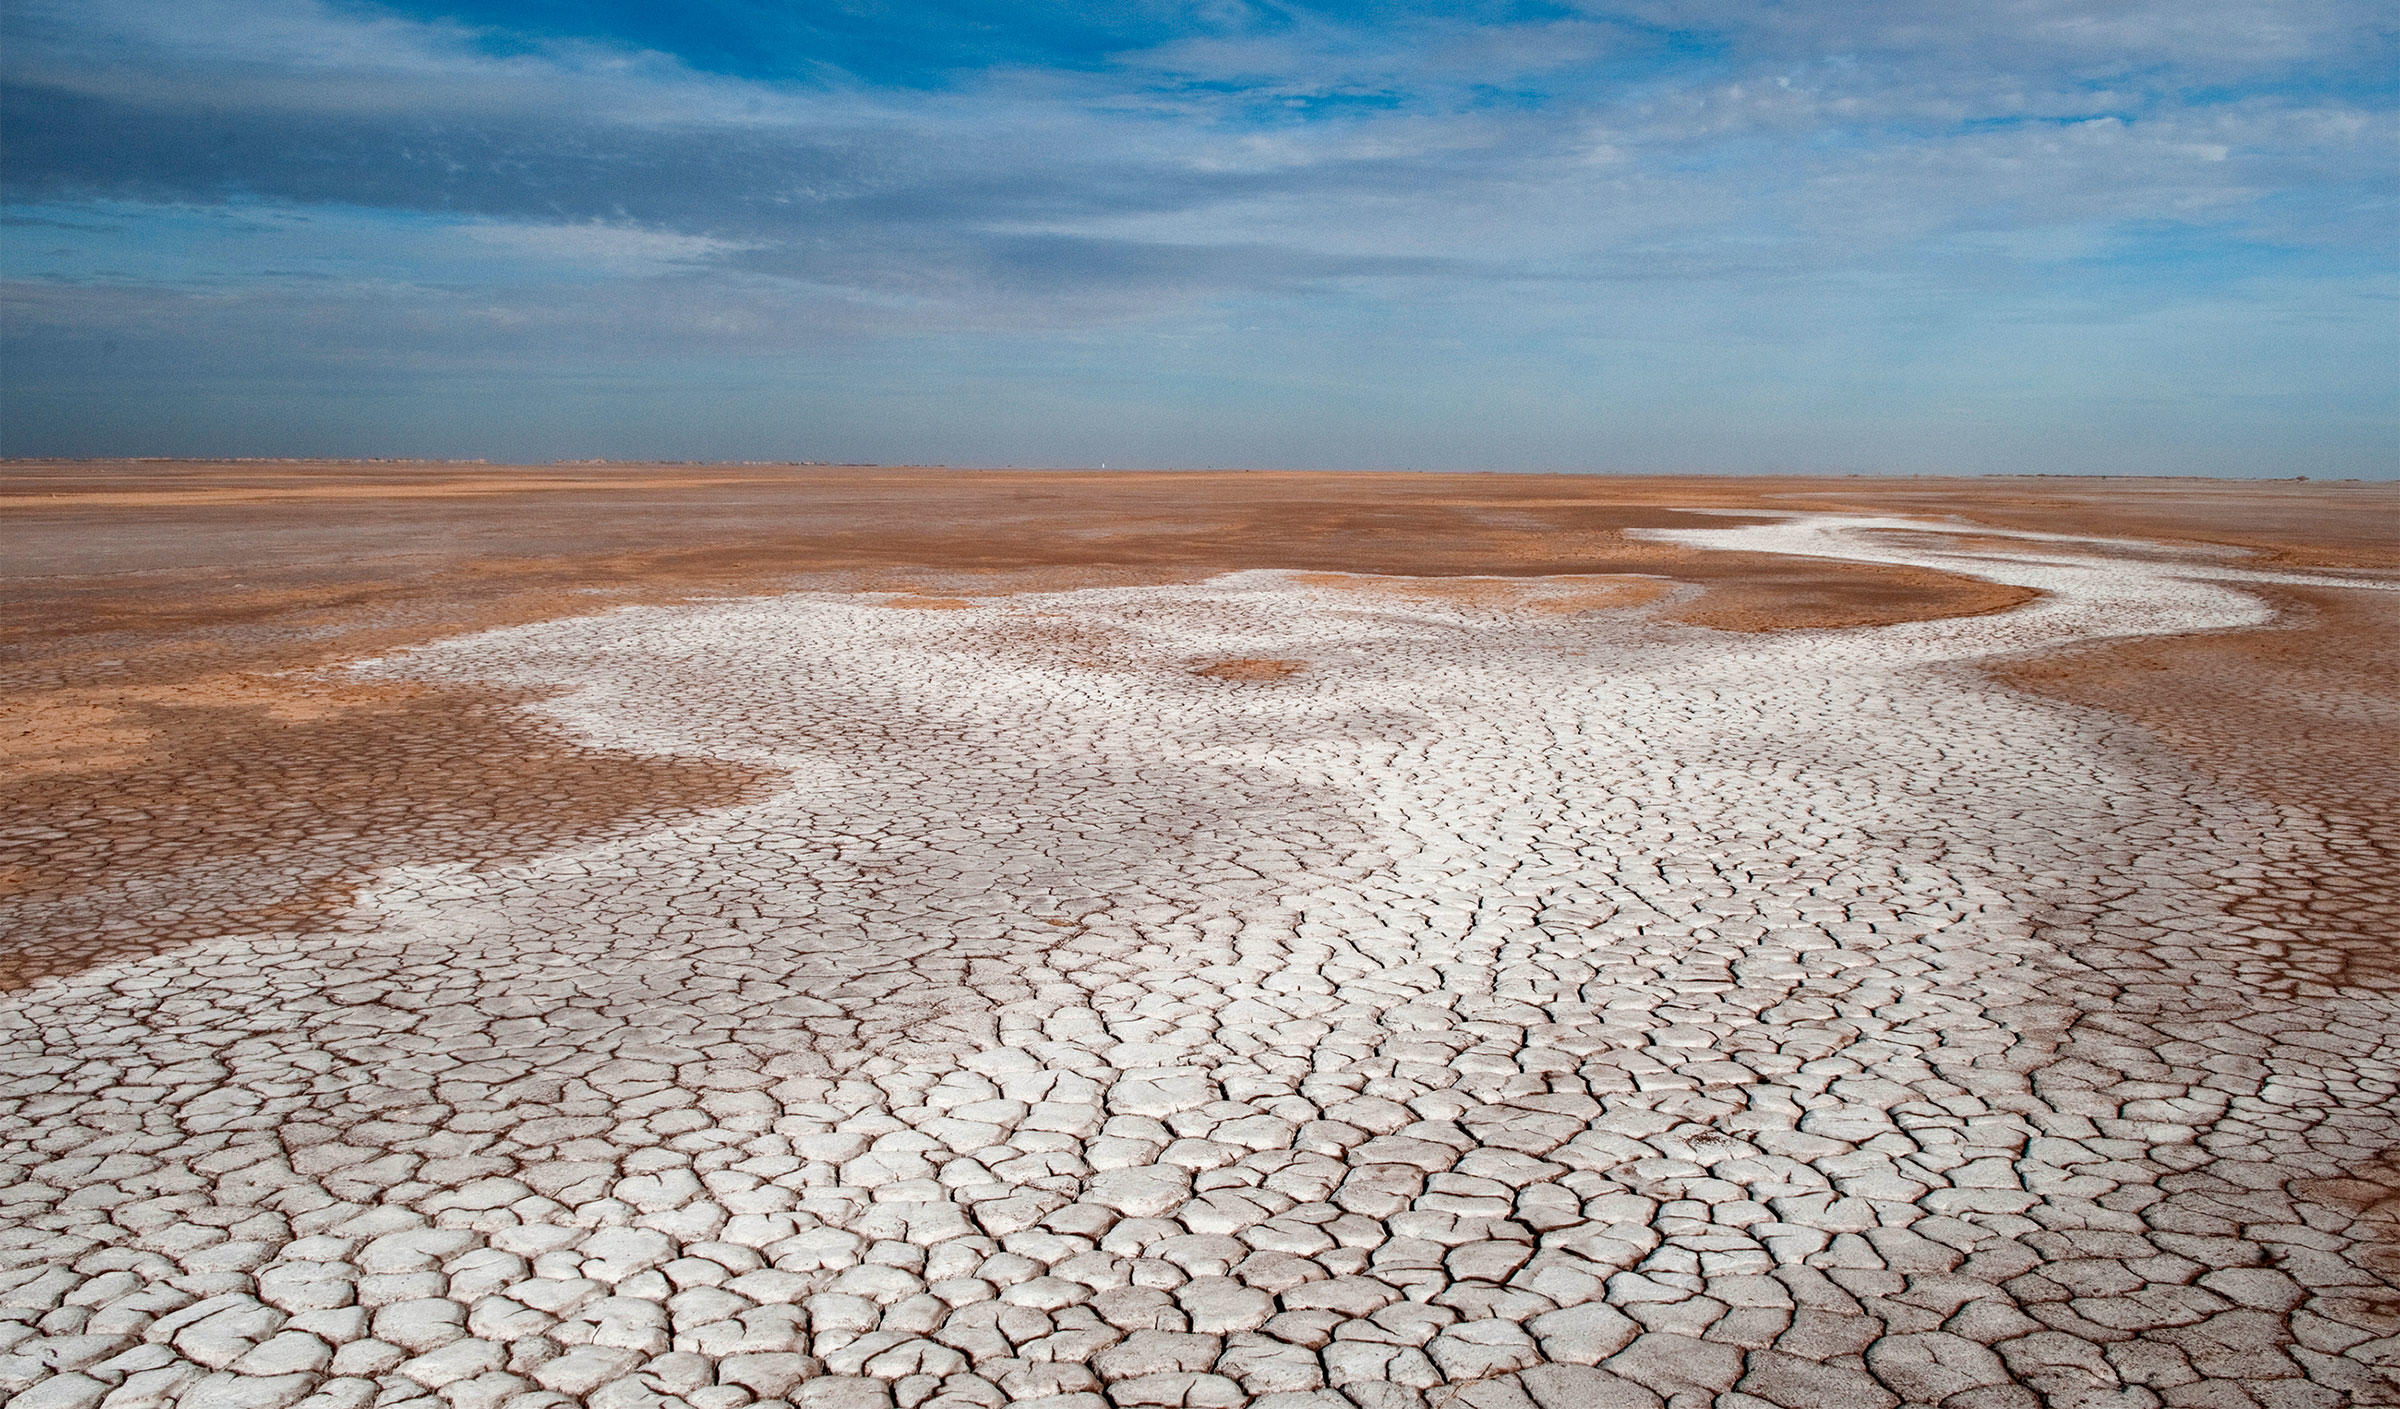 Without an influx of water, the Colorado River trickles to a halt 100 miles inland of its historical coastal outlet in Mexico. Pete McBride/National Geographic Creative